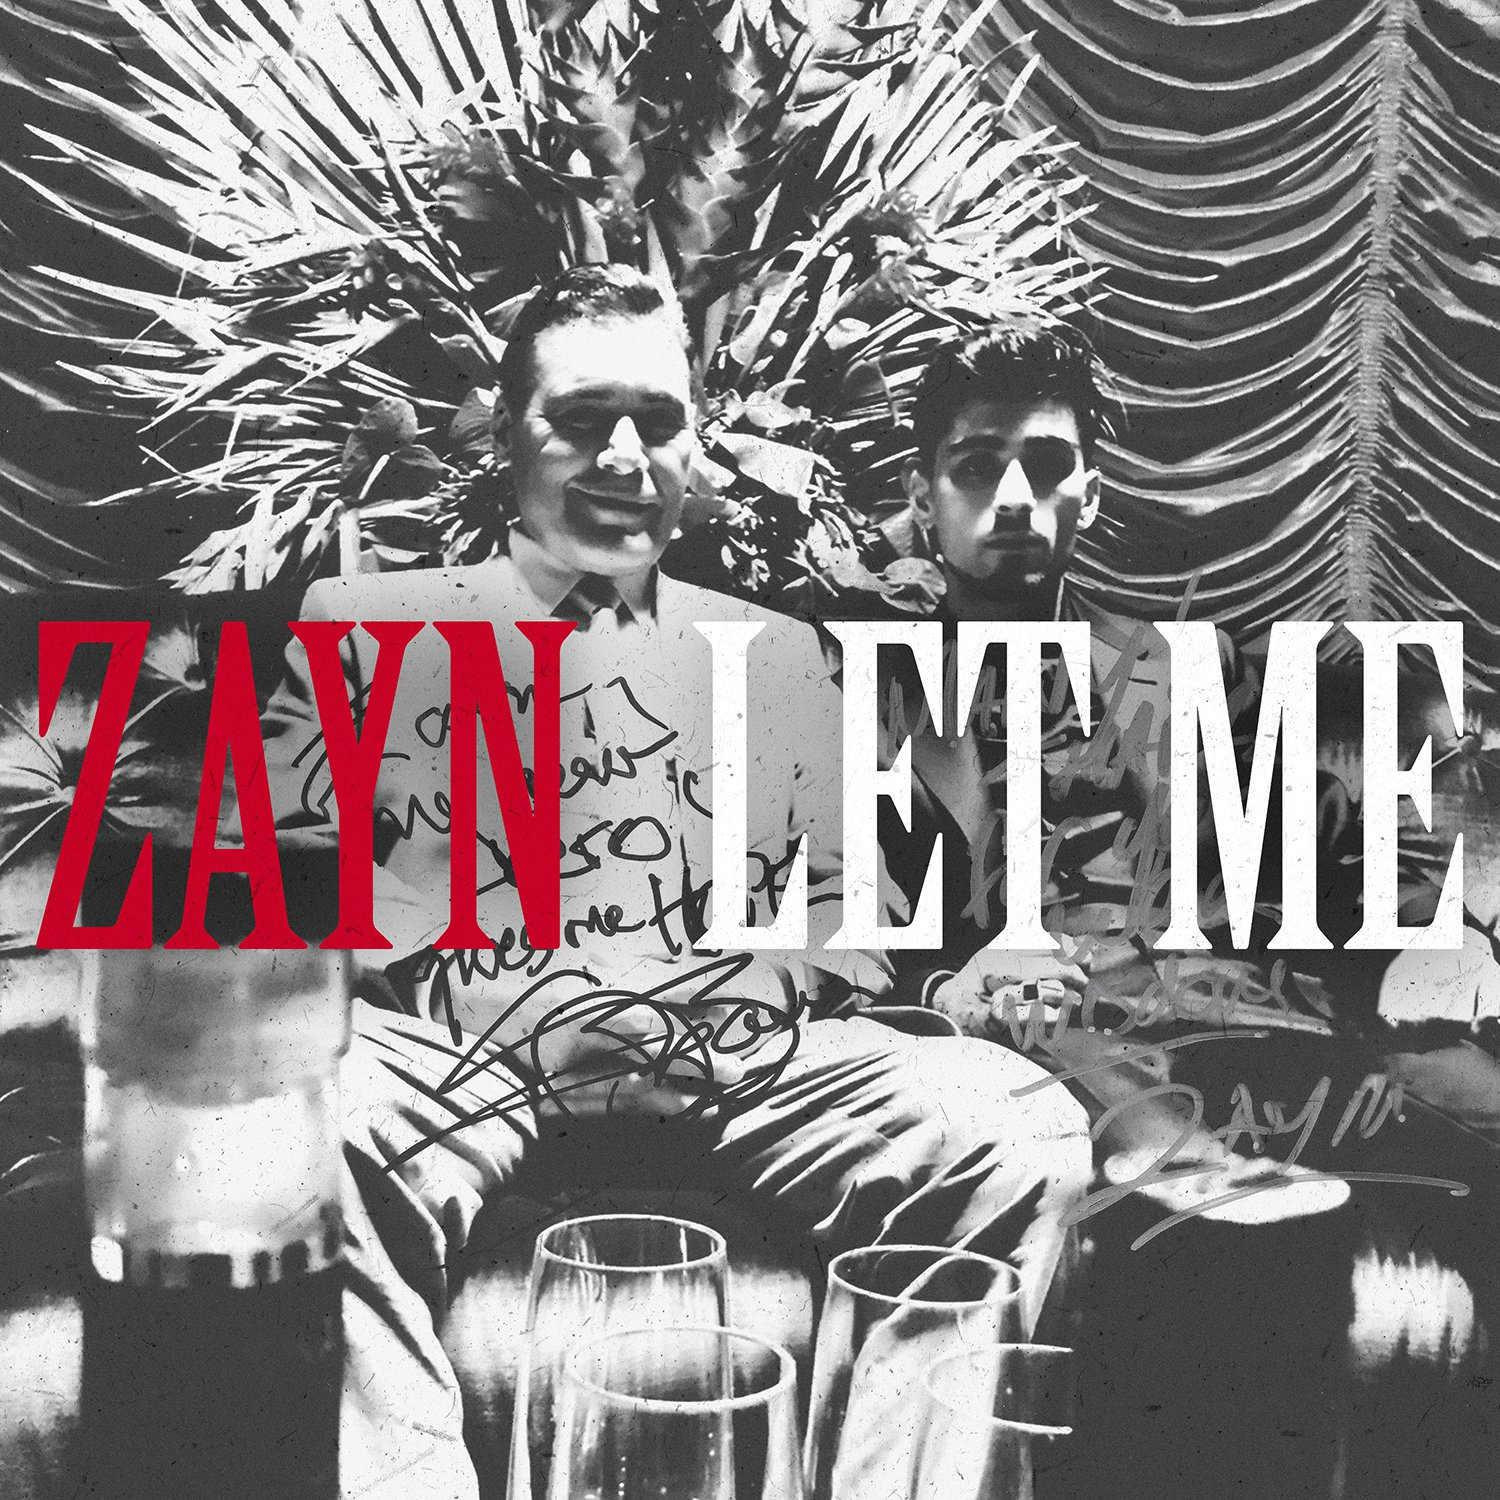 ������ @zaynmalik is on with @zanelowe to talk #LetMe and his sophomore album! Listen: https://t.co/2j7yOZ2ONT https://t.co/b6GNY2IwqS